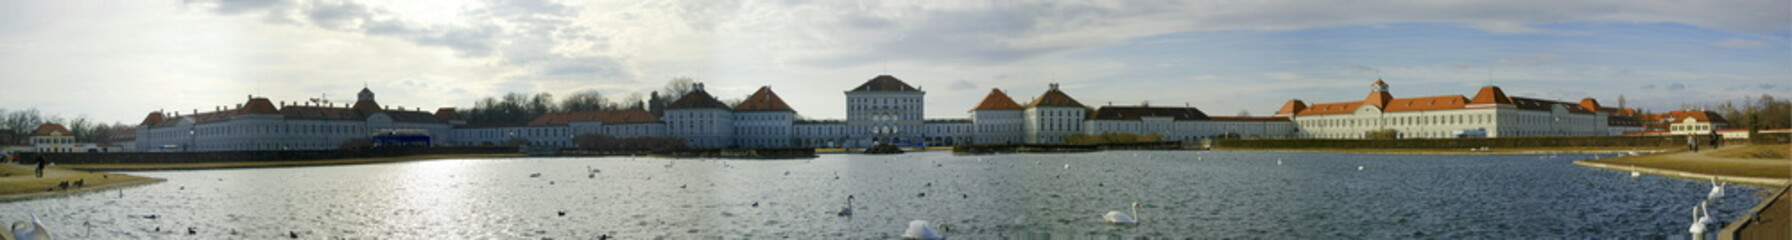 nymphenburg panorama